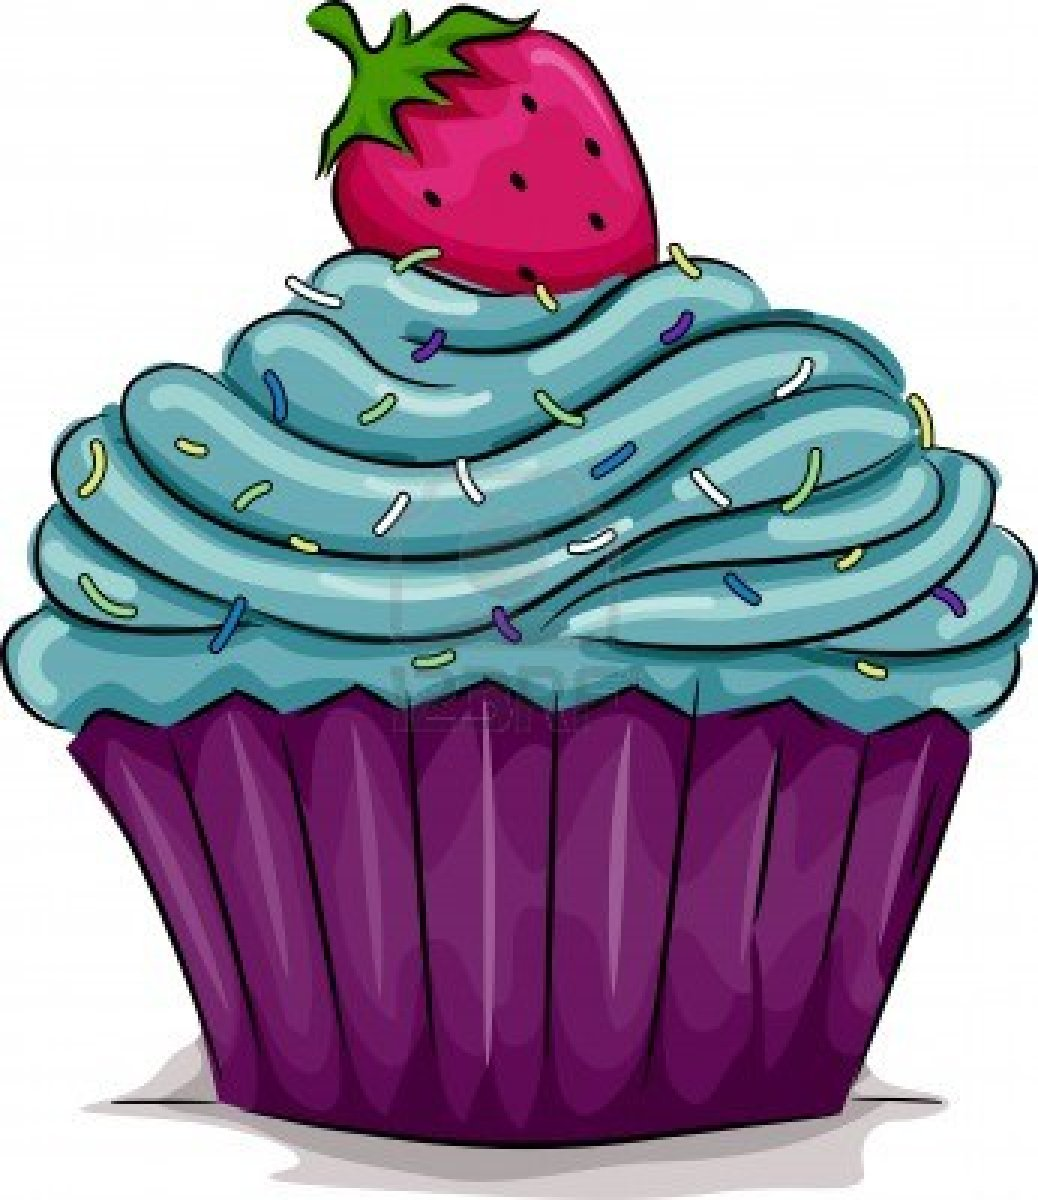 Clipart De Cupcake : Illustration Of A Cupcake With A Strawberry On Top Free ...